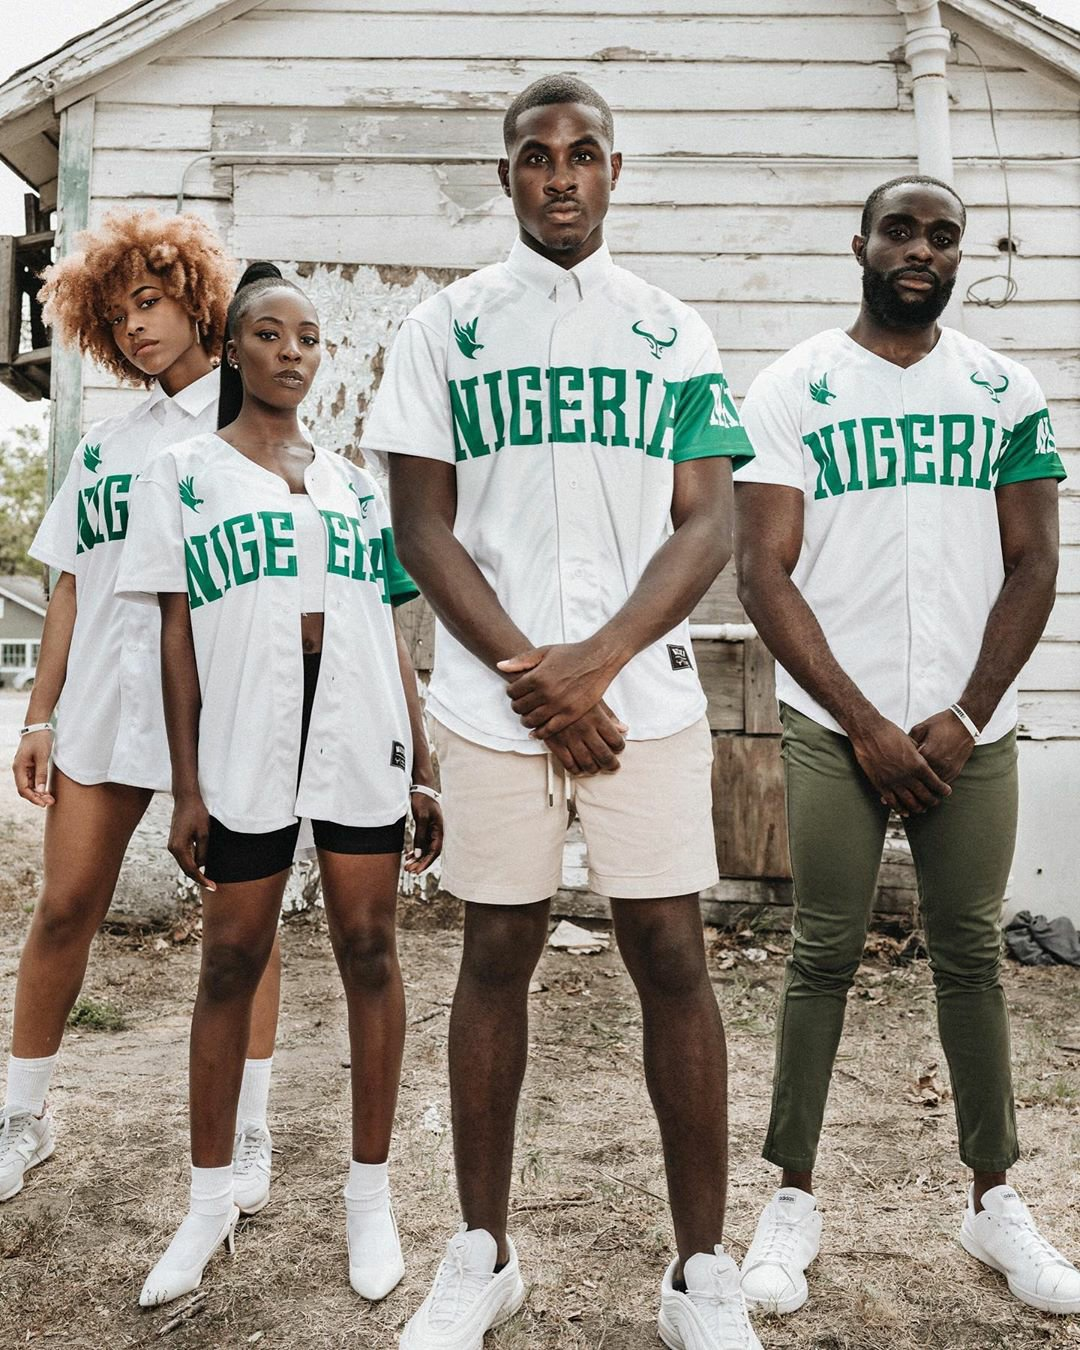 0this vogue approved brand is spotlighting africa with sports jerseys8566113545435406330